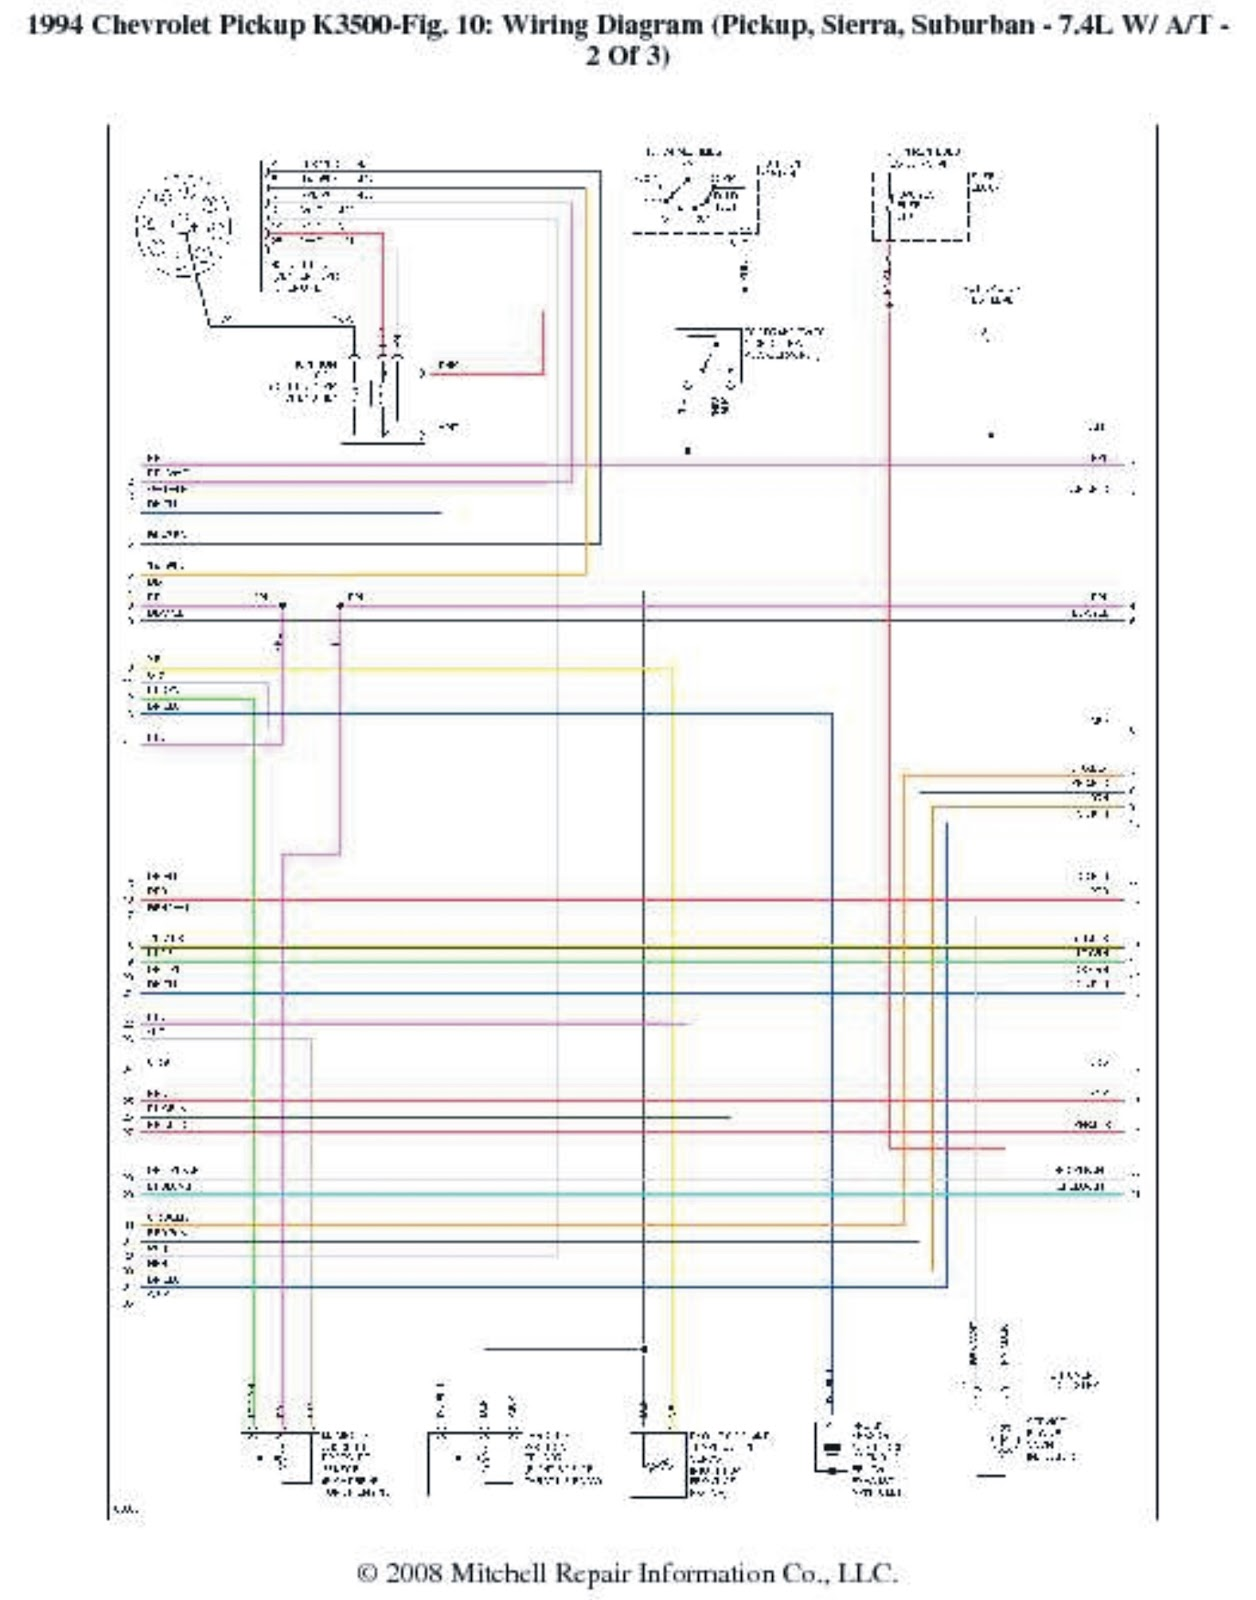 92 s10 stereo wiring diagram wiring diagram database remarkable suzuki swift 2007 stereo wiring diagram images best 87 s10 schmatic 92 s10 stereo wiring diagram publicscrutiny Choice Image